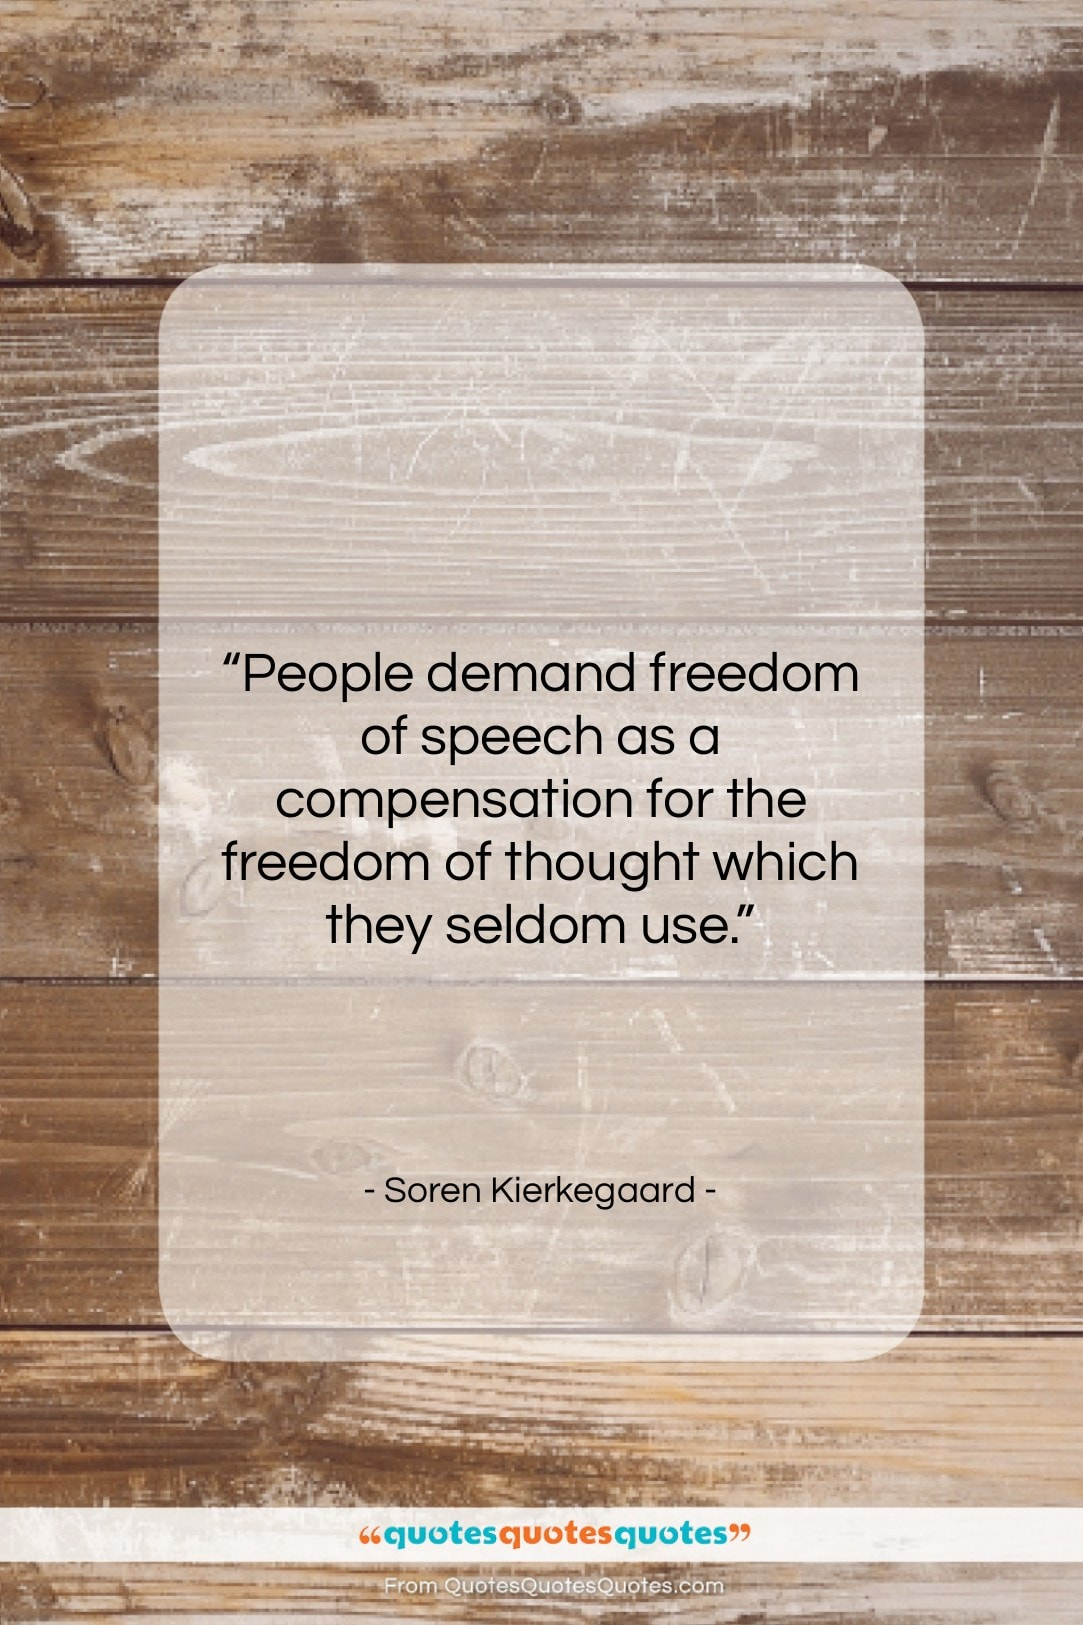 """Soren Kierkegaard quote: """"People demand freedom of speech as a…""""- at QuotesQuotesQuotes.com"""